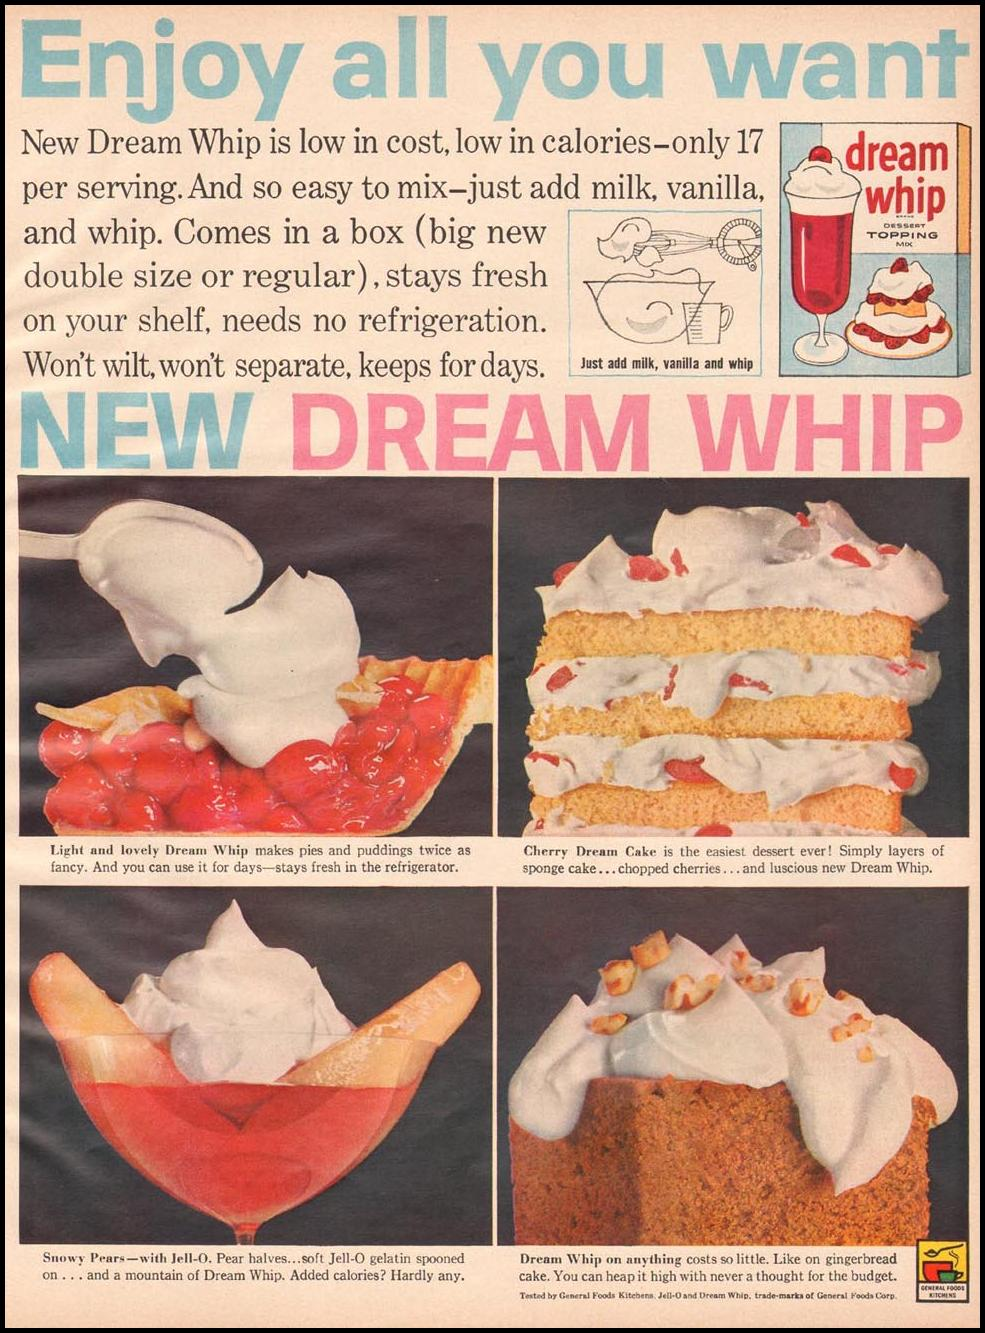 DREAM WHIP WHIPPED TOPPING BETTER HOMES AND GARDENS 03/01/1960 p. 125